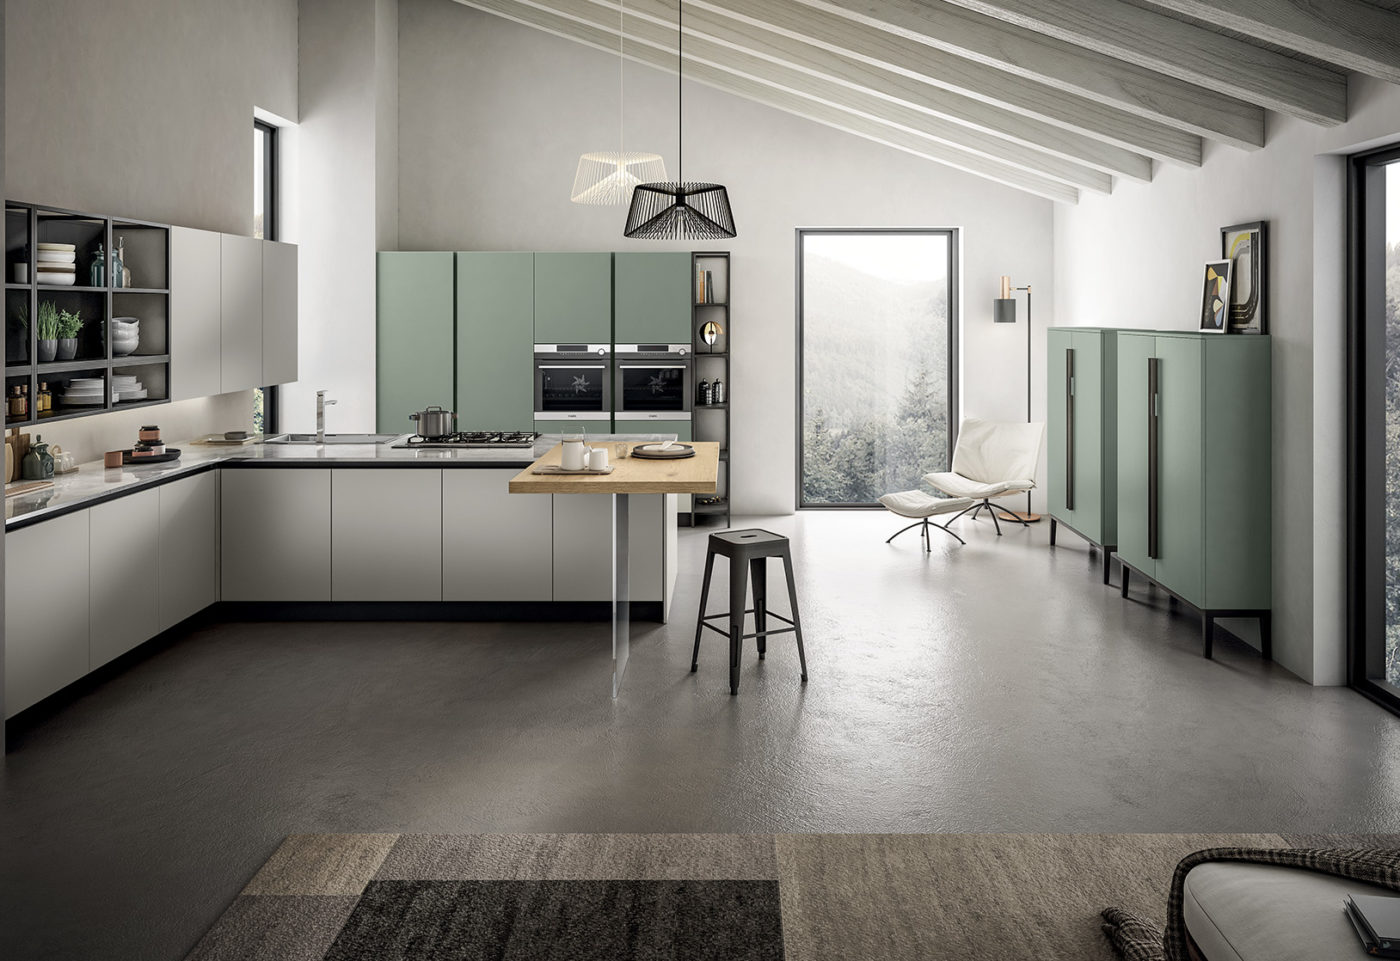 New finishes and compositions for Cloe by Arredo3, featuring versatility - 4